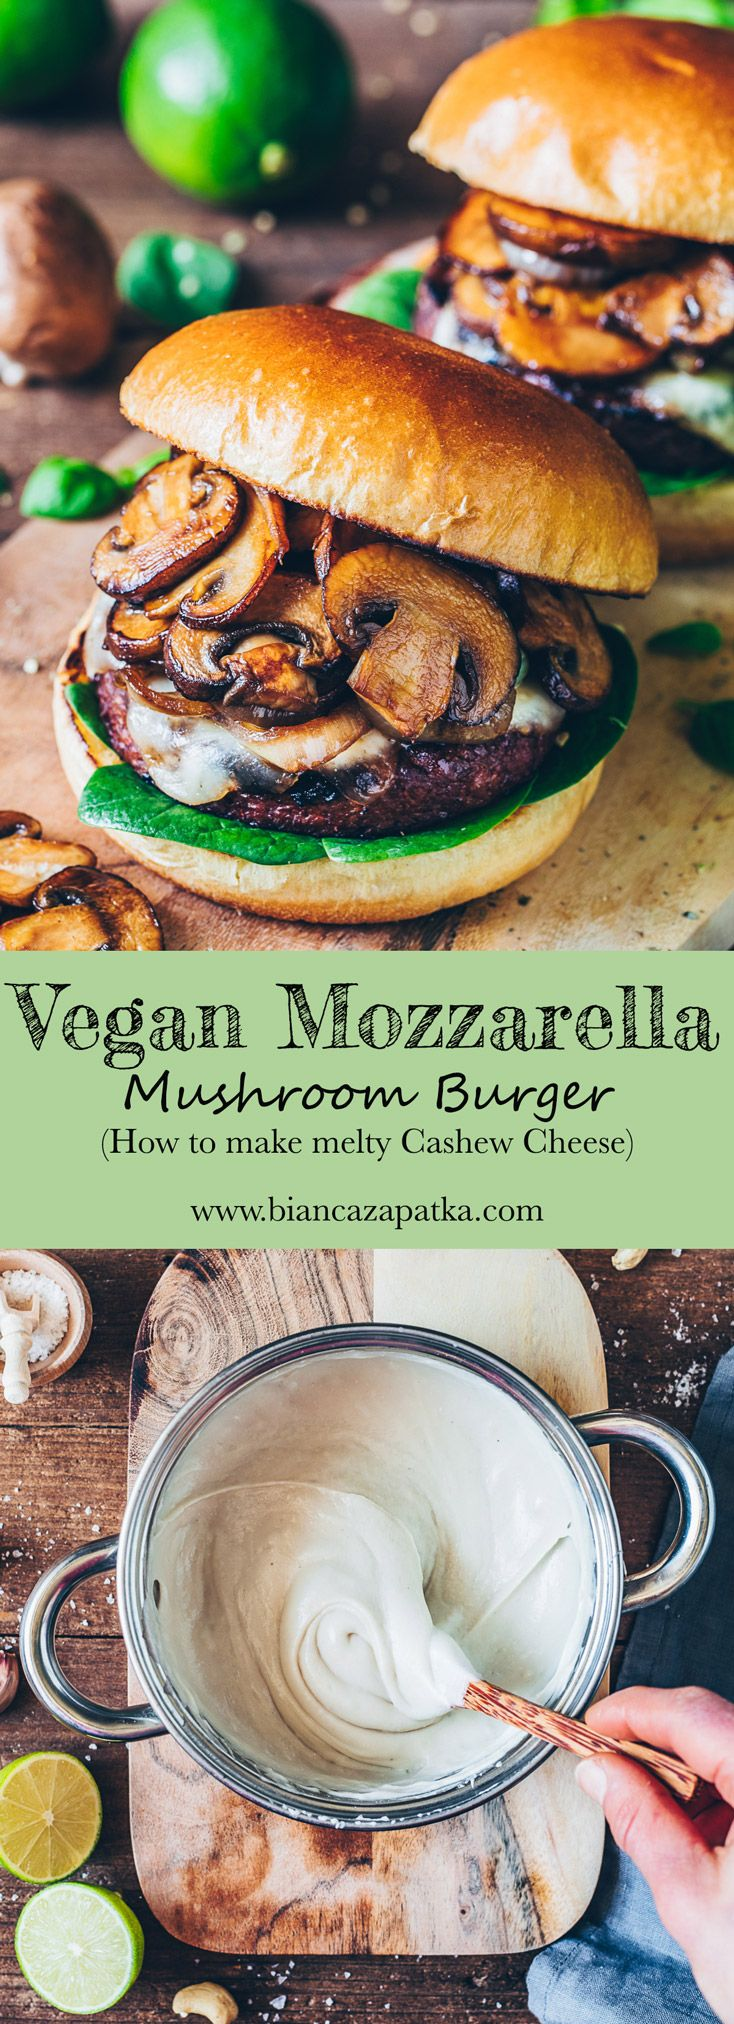 Vegan Mozzarella Mushroom Burger - Bianca Zapatka | Recipes